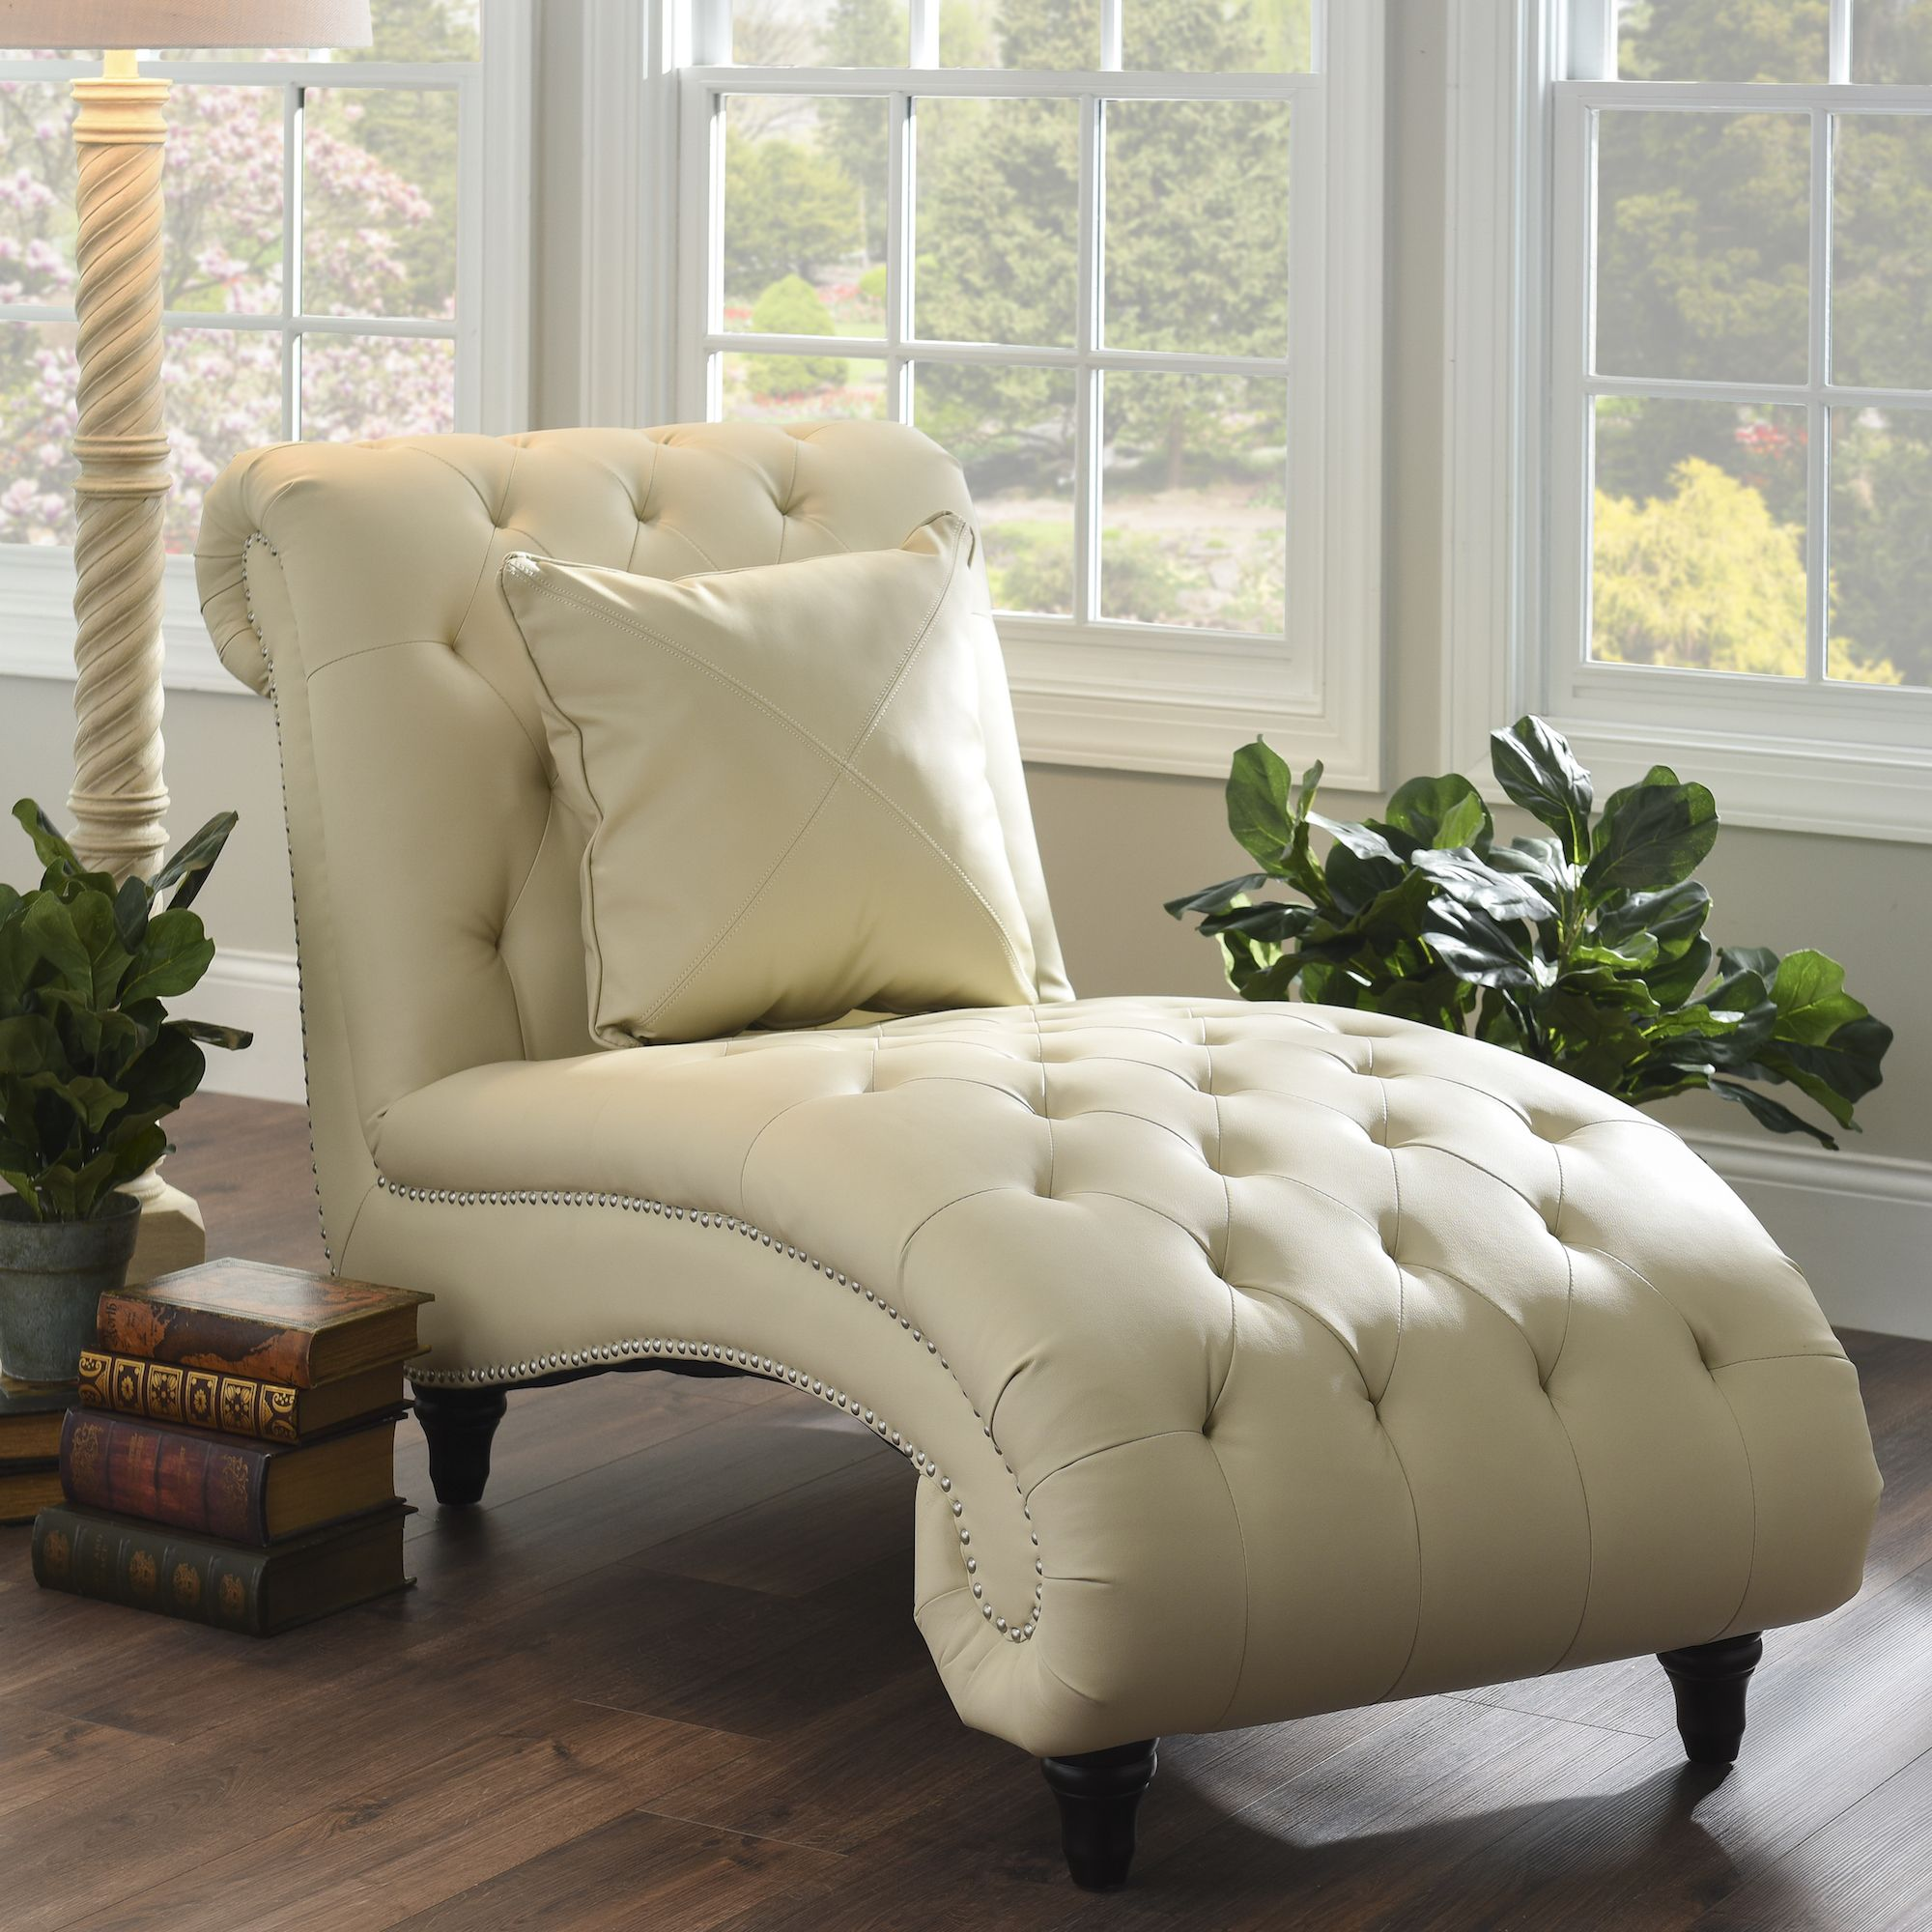 Bring Elegance And Charm To Your Living Room Seating With